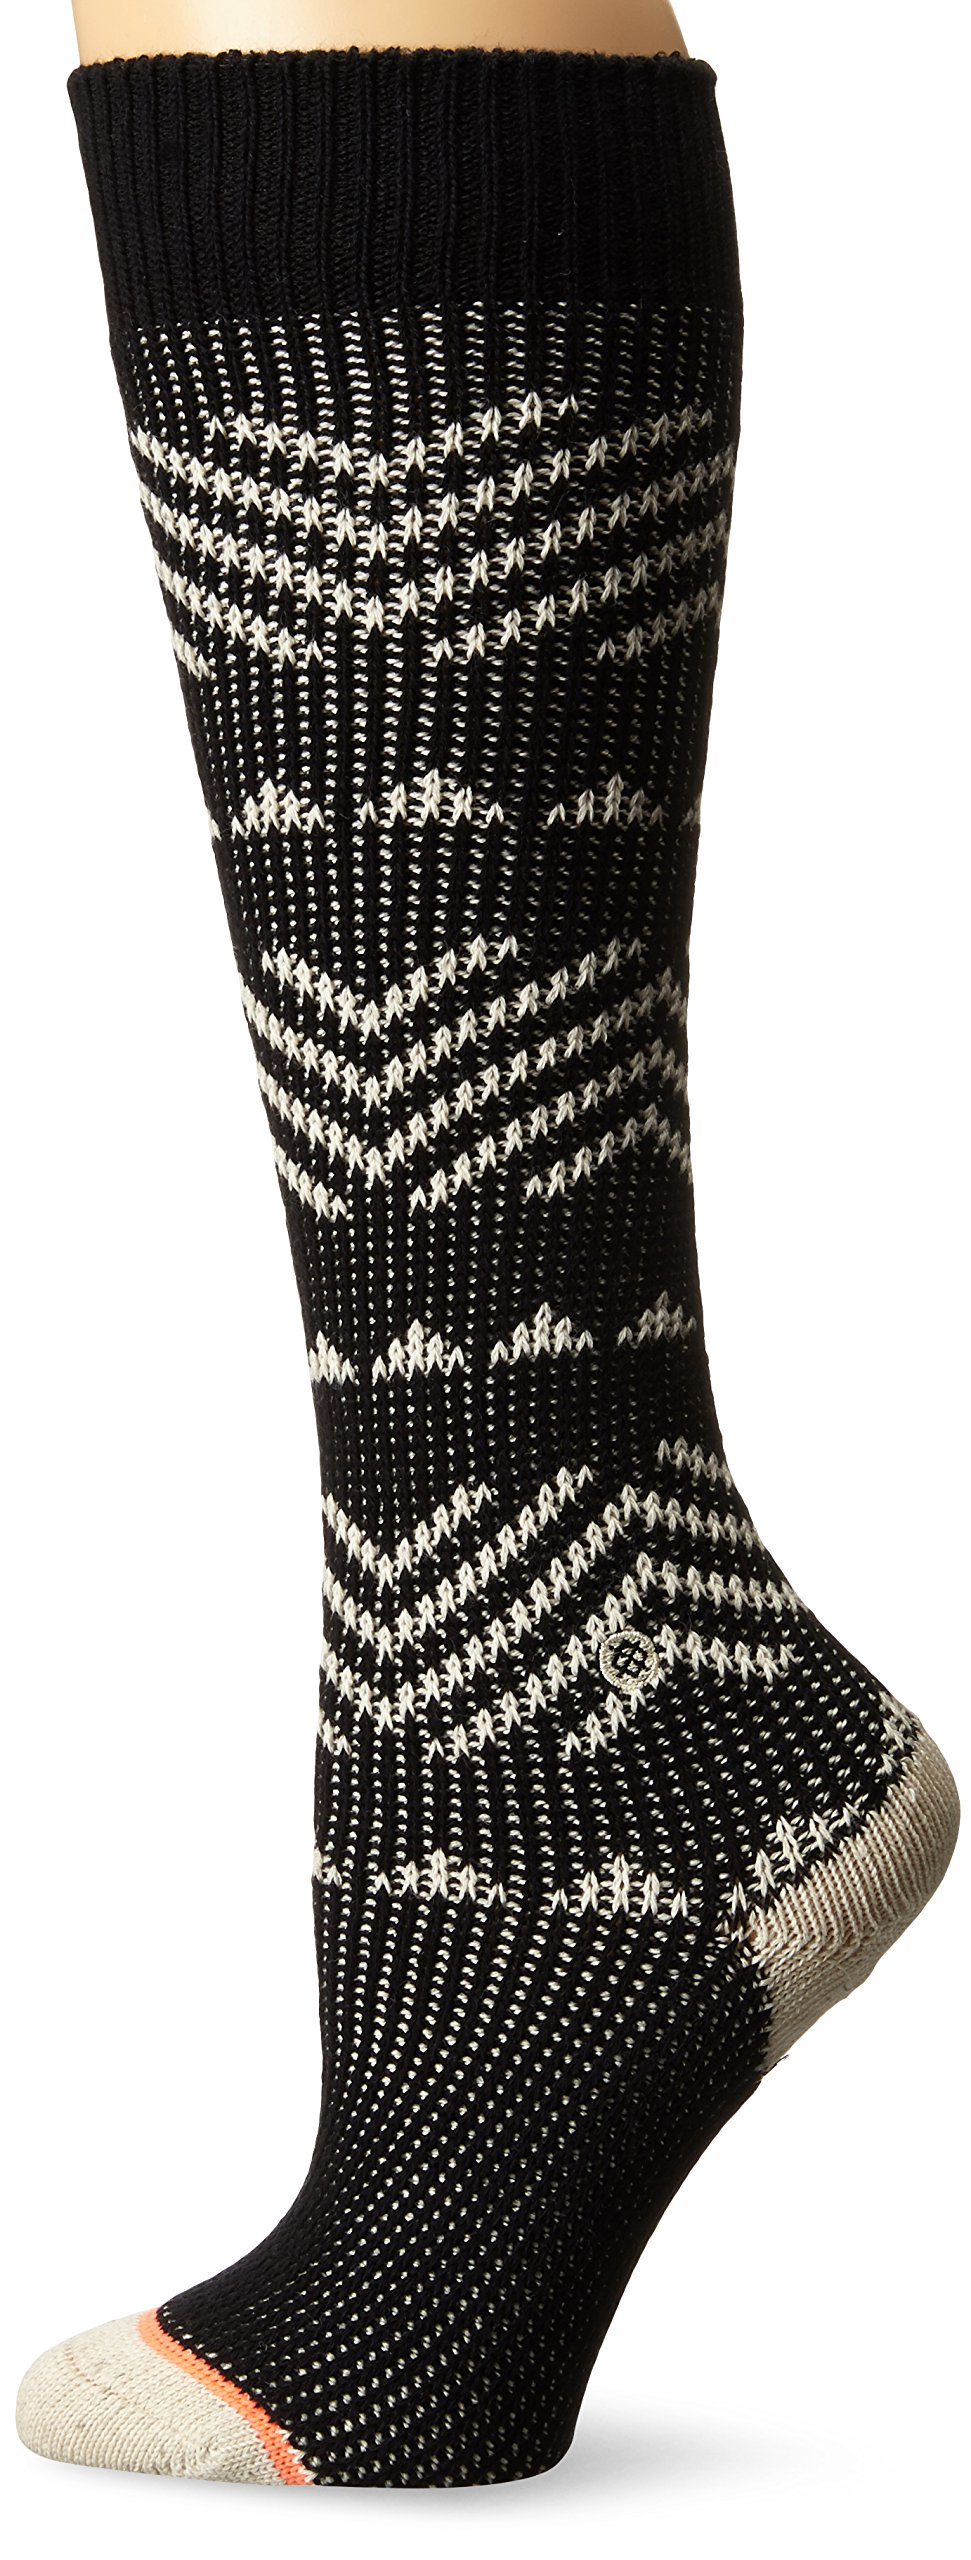 Stance Women's Del Valle Tall Boot Sock, Black, Small by Stance (Image #1)